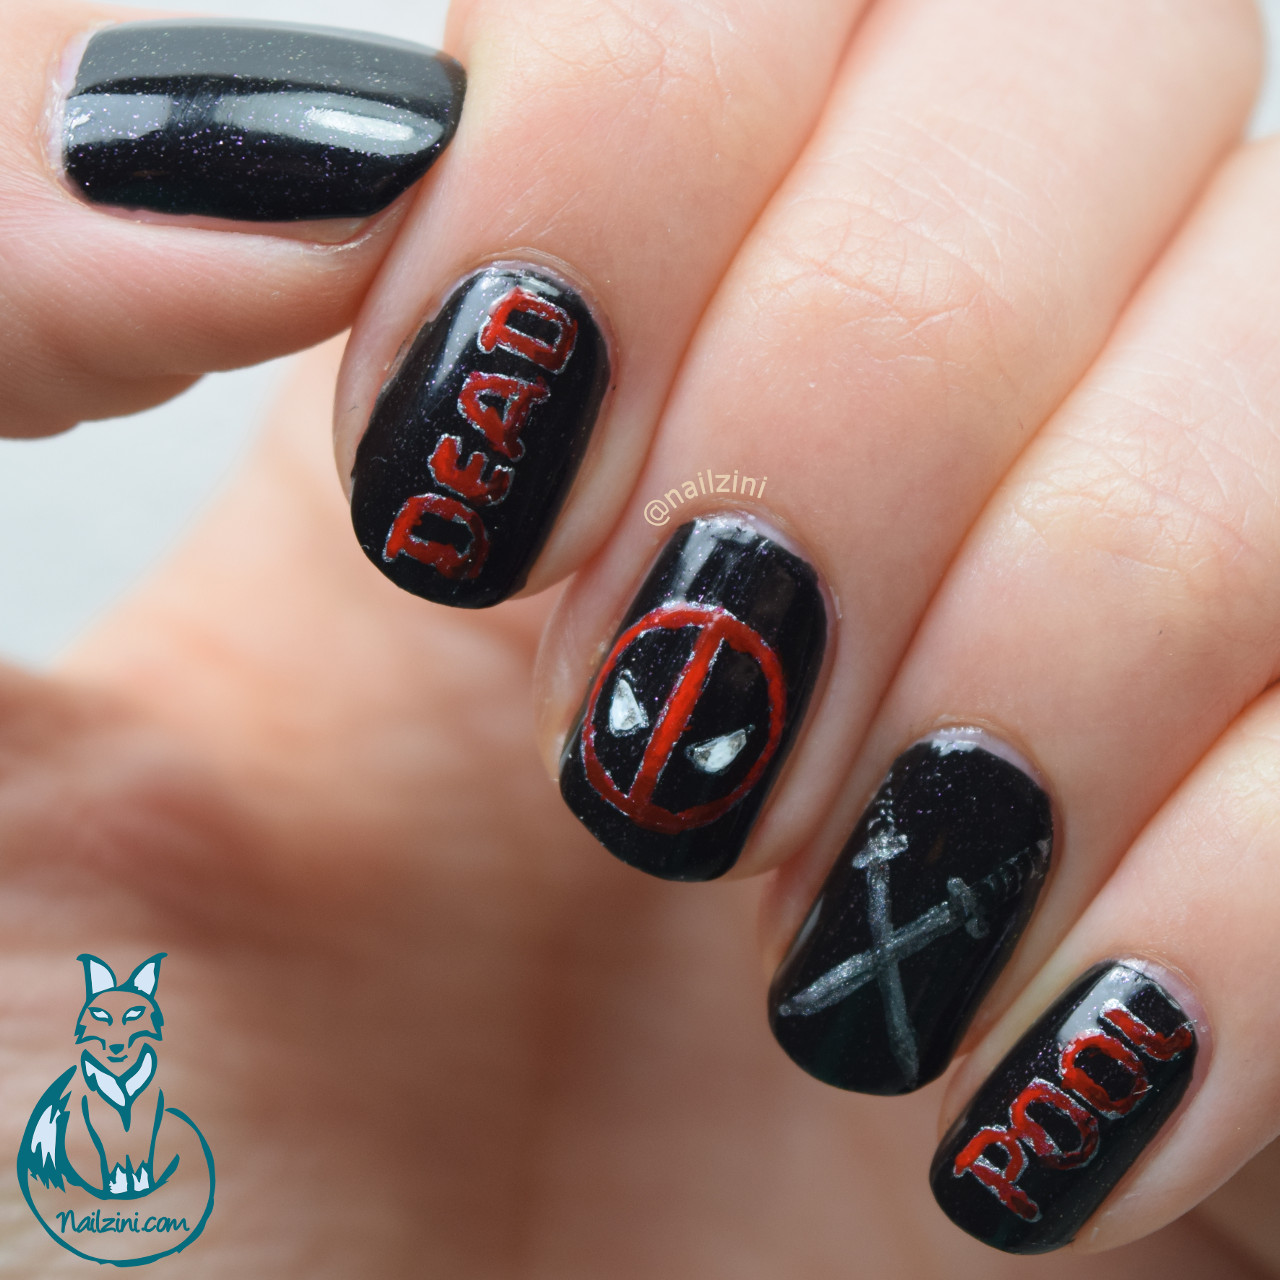 Deadpool Nail Art - Deadpool Nail Art Nailzini: A Nail Art Blog